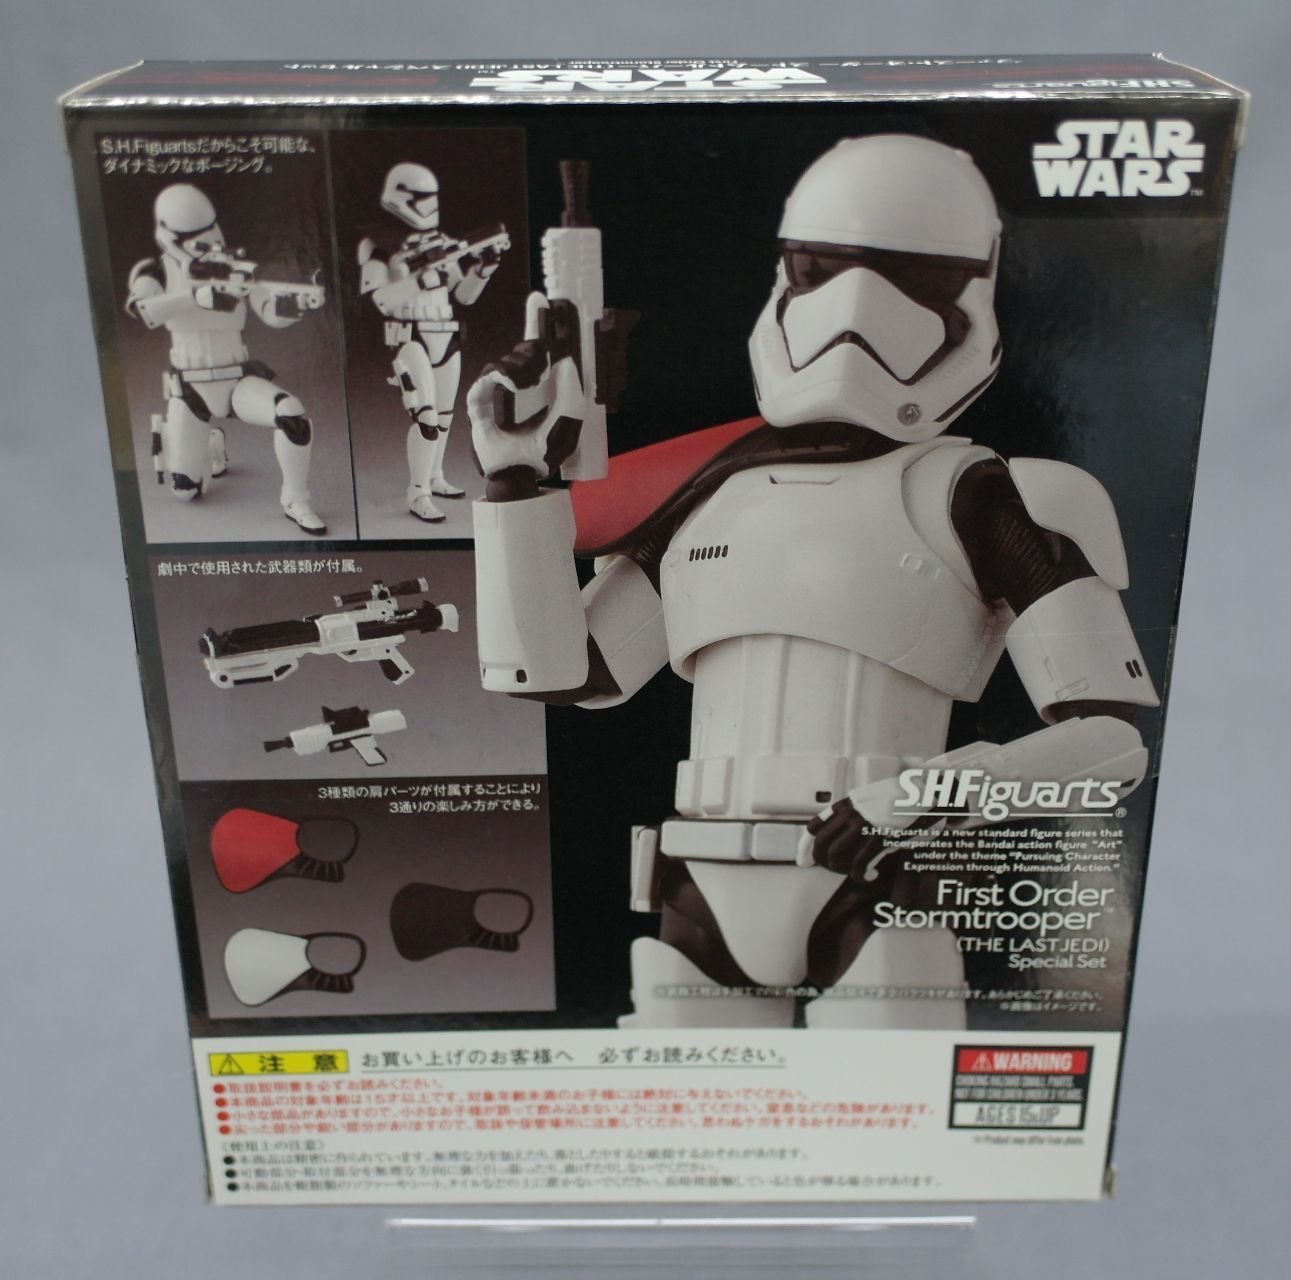 TLJ FO Stormtrooper Figure Set 2